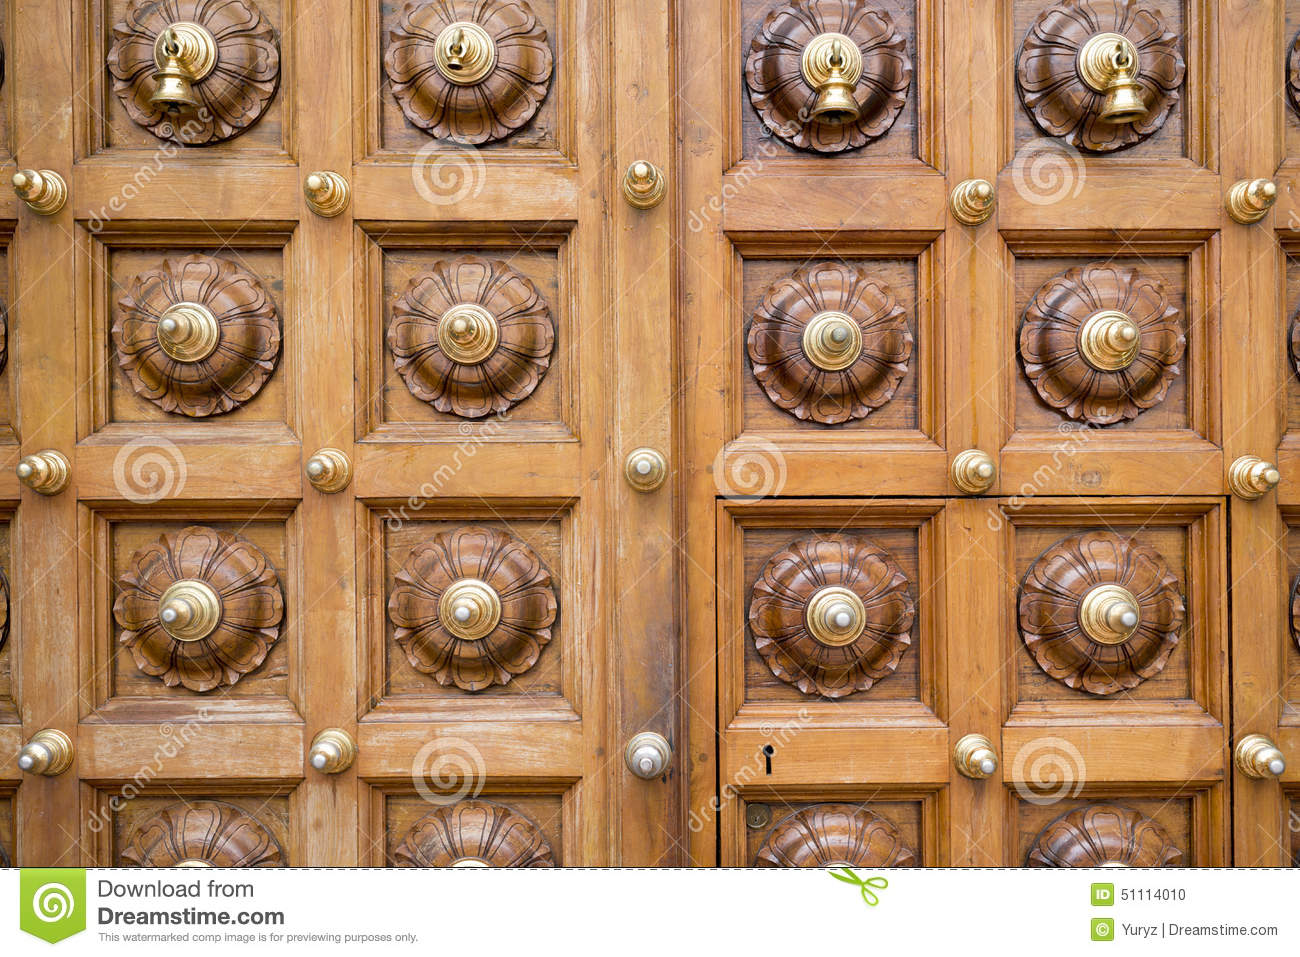 Temple door stock photo. image of decorated temple carving 51114010